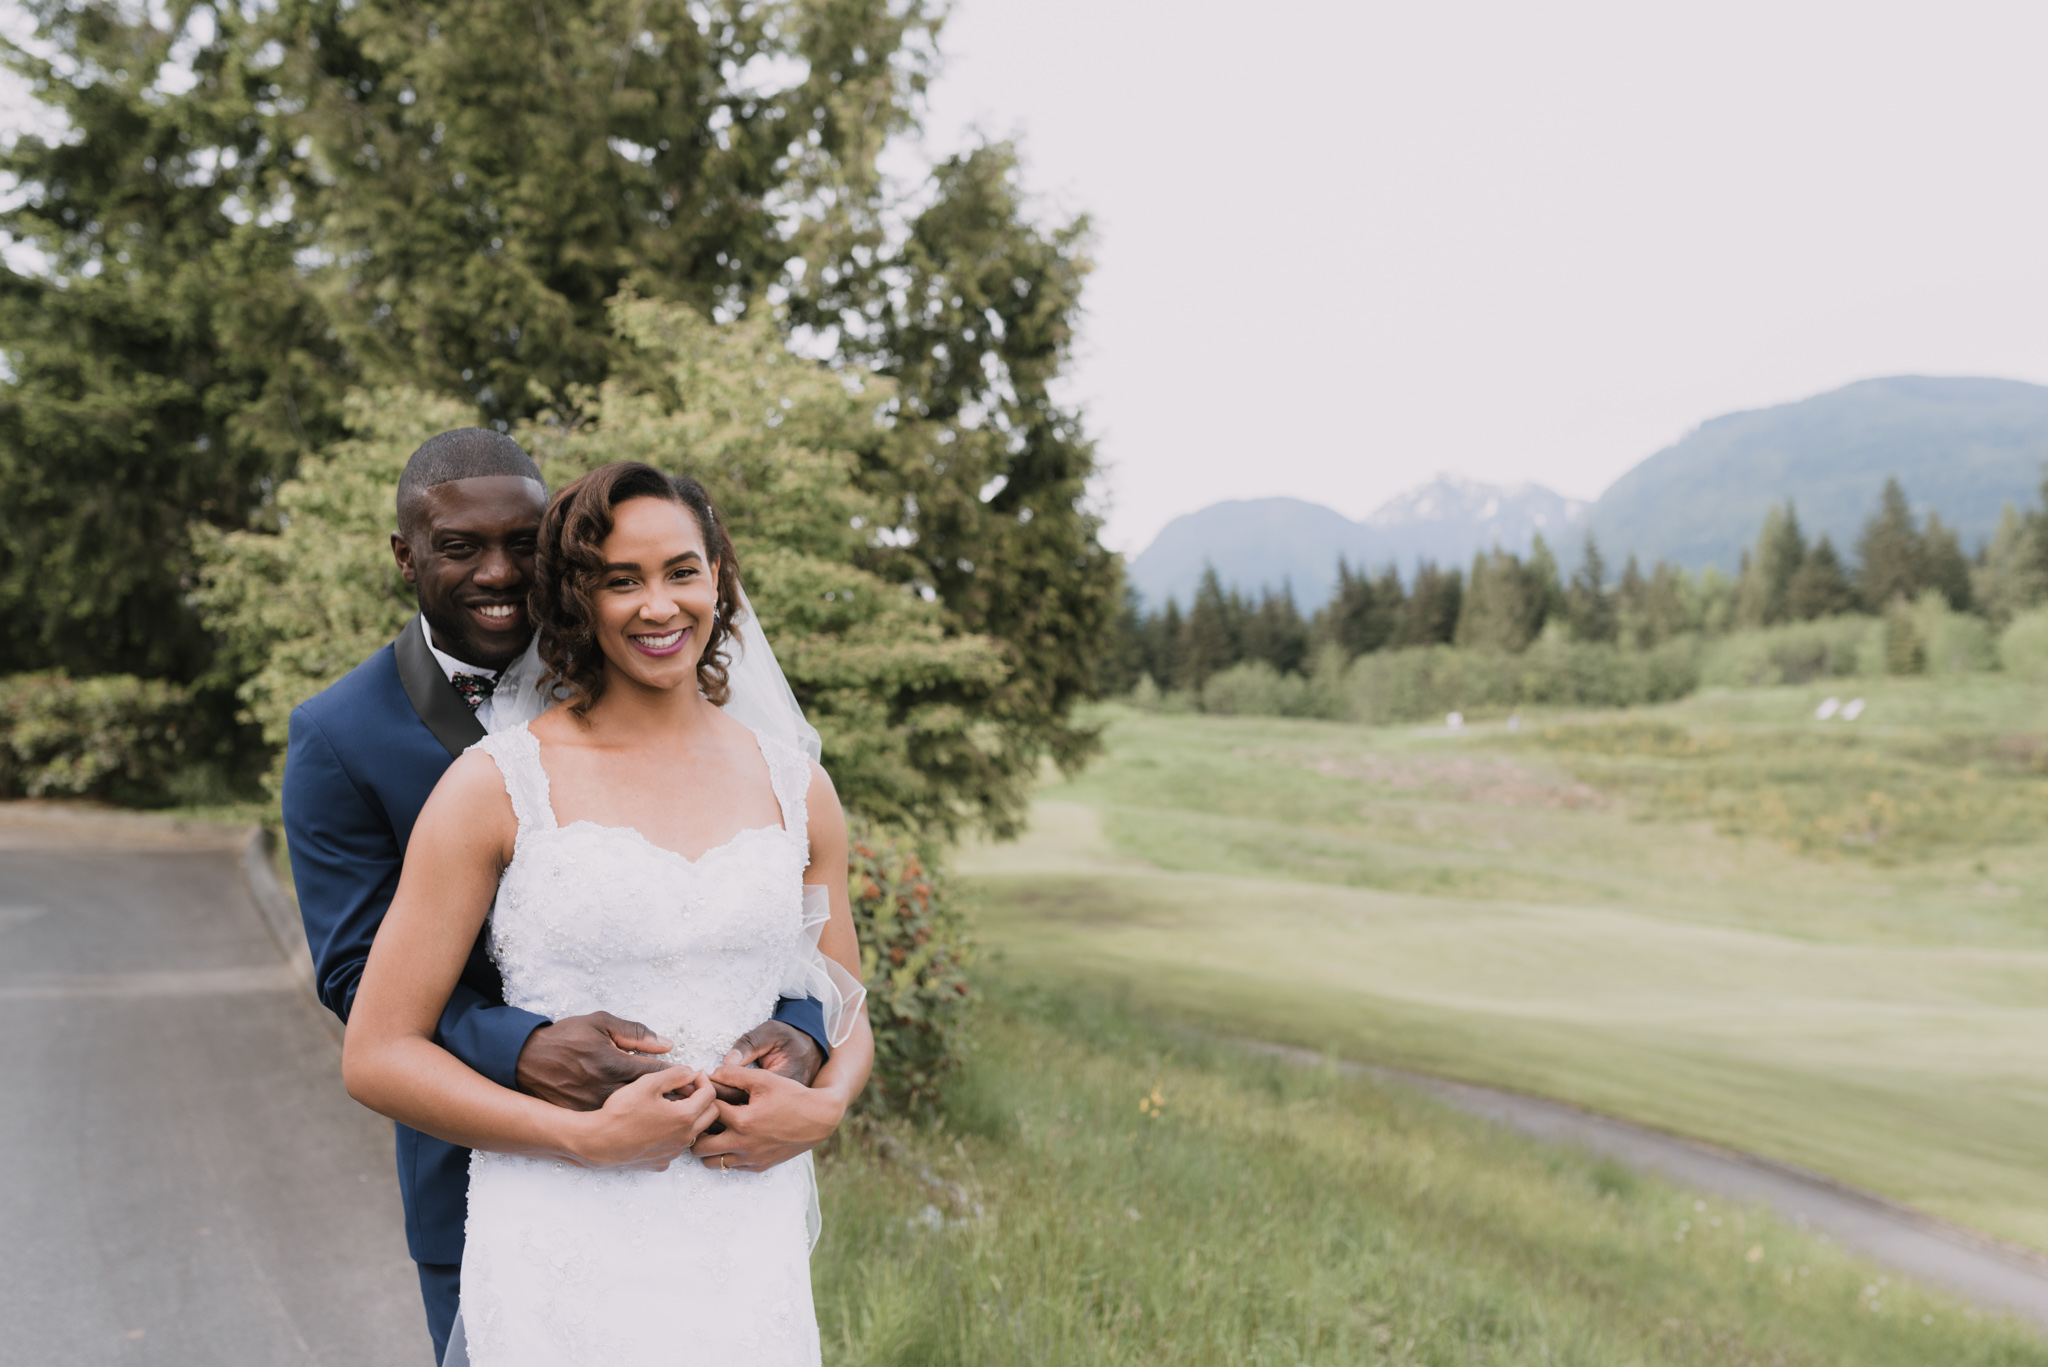 Gabe and Dwight_Westwood Plateau_Katie Powell Photography-49.jpg